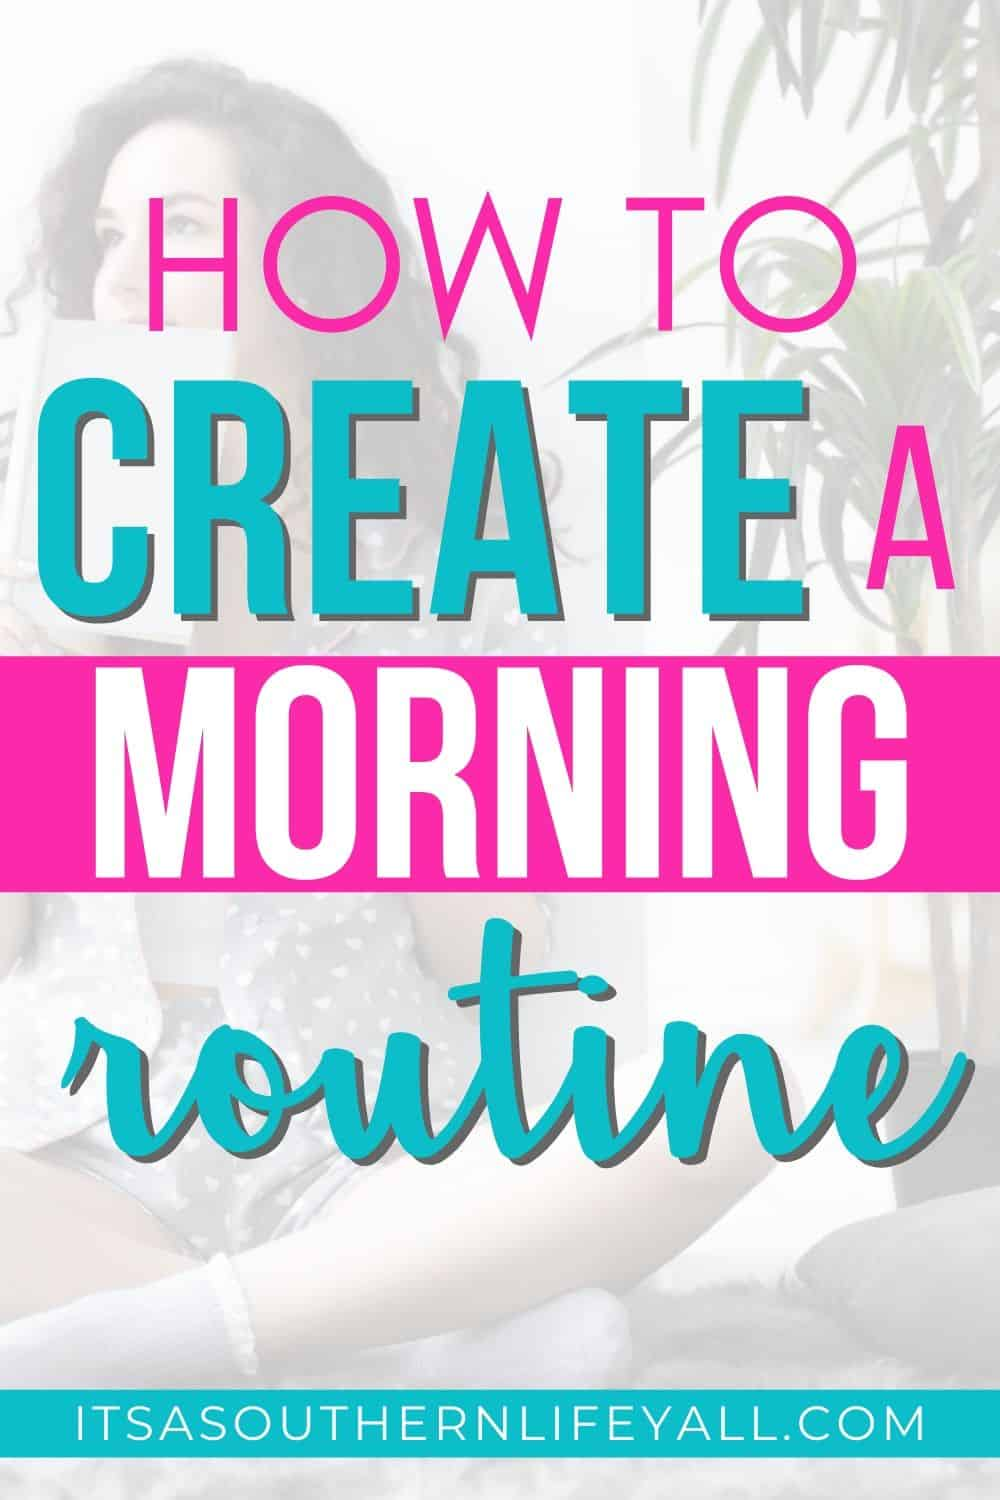 Woman drinking coffee in the background with how to create a morning routine text overlay.